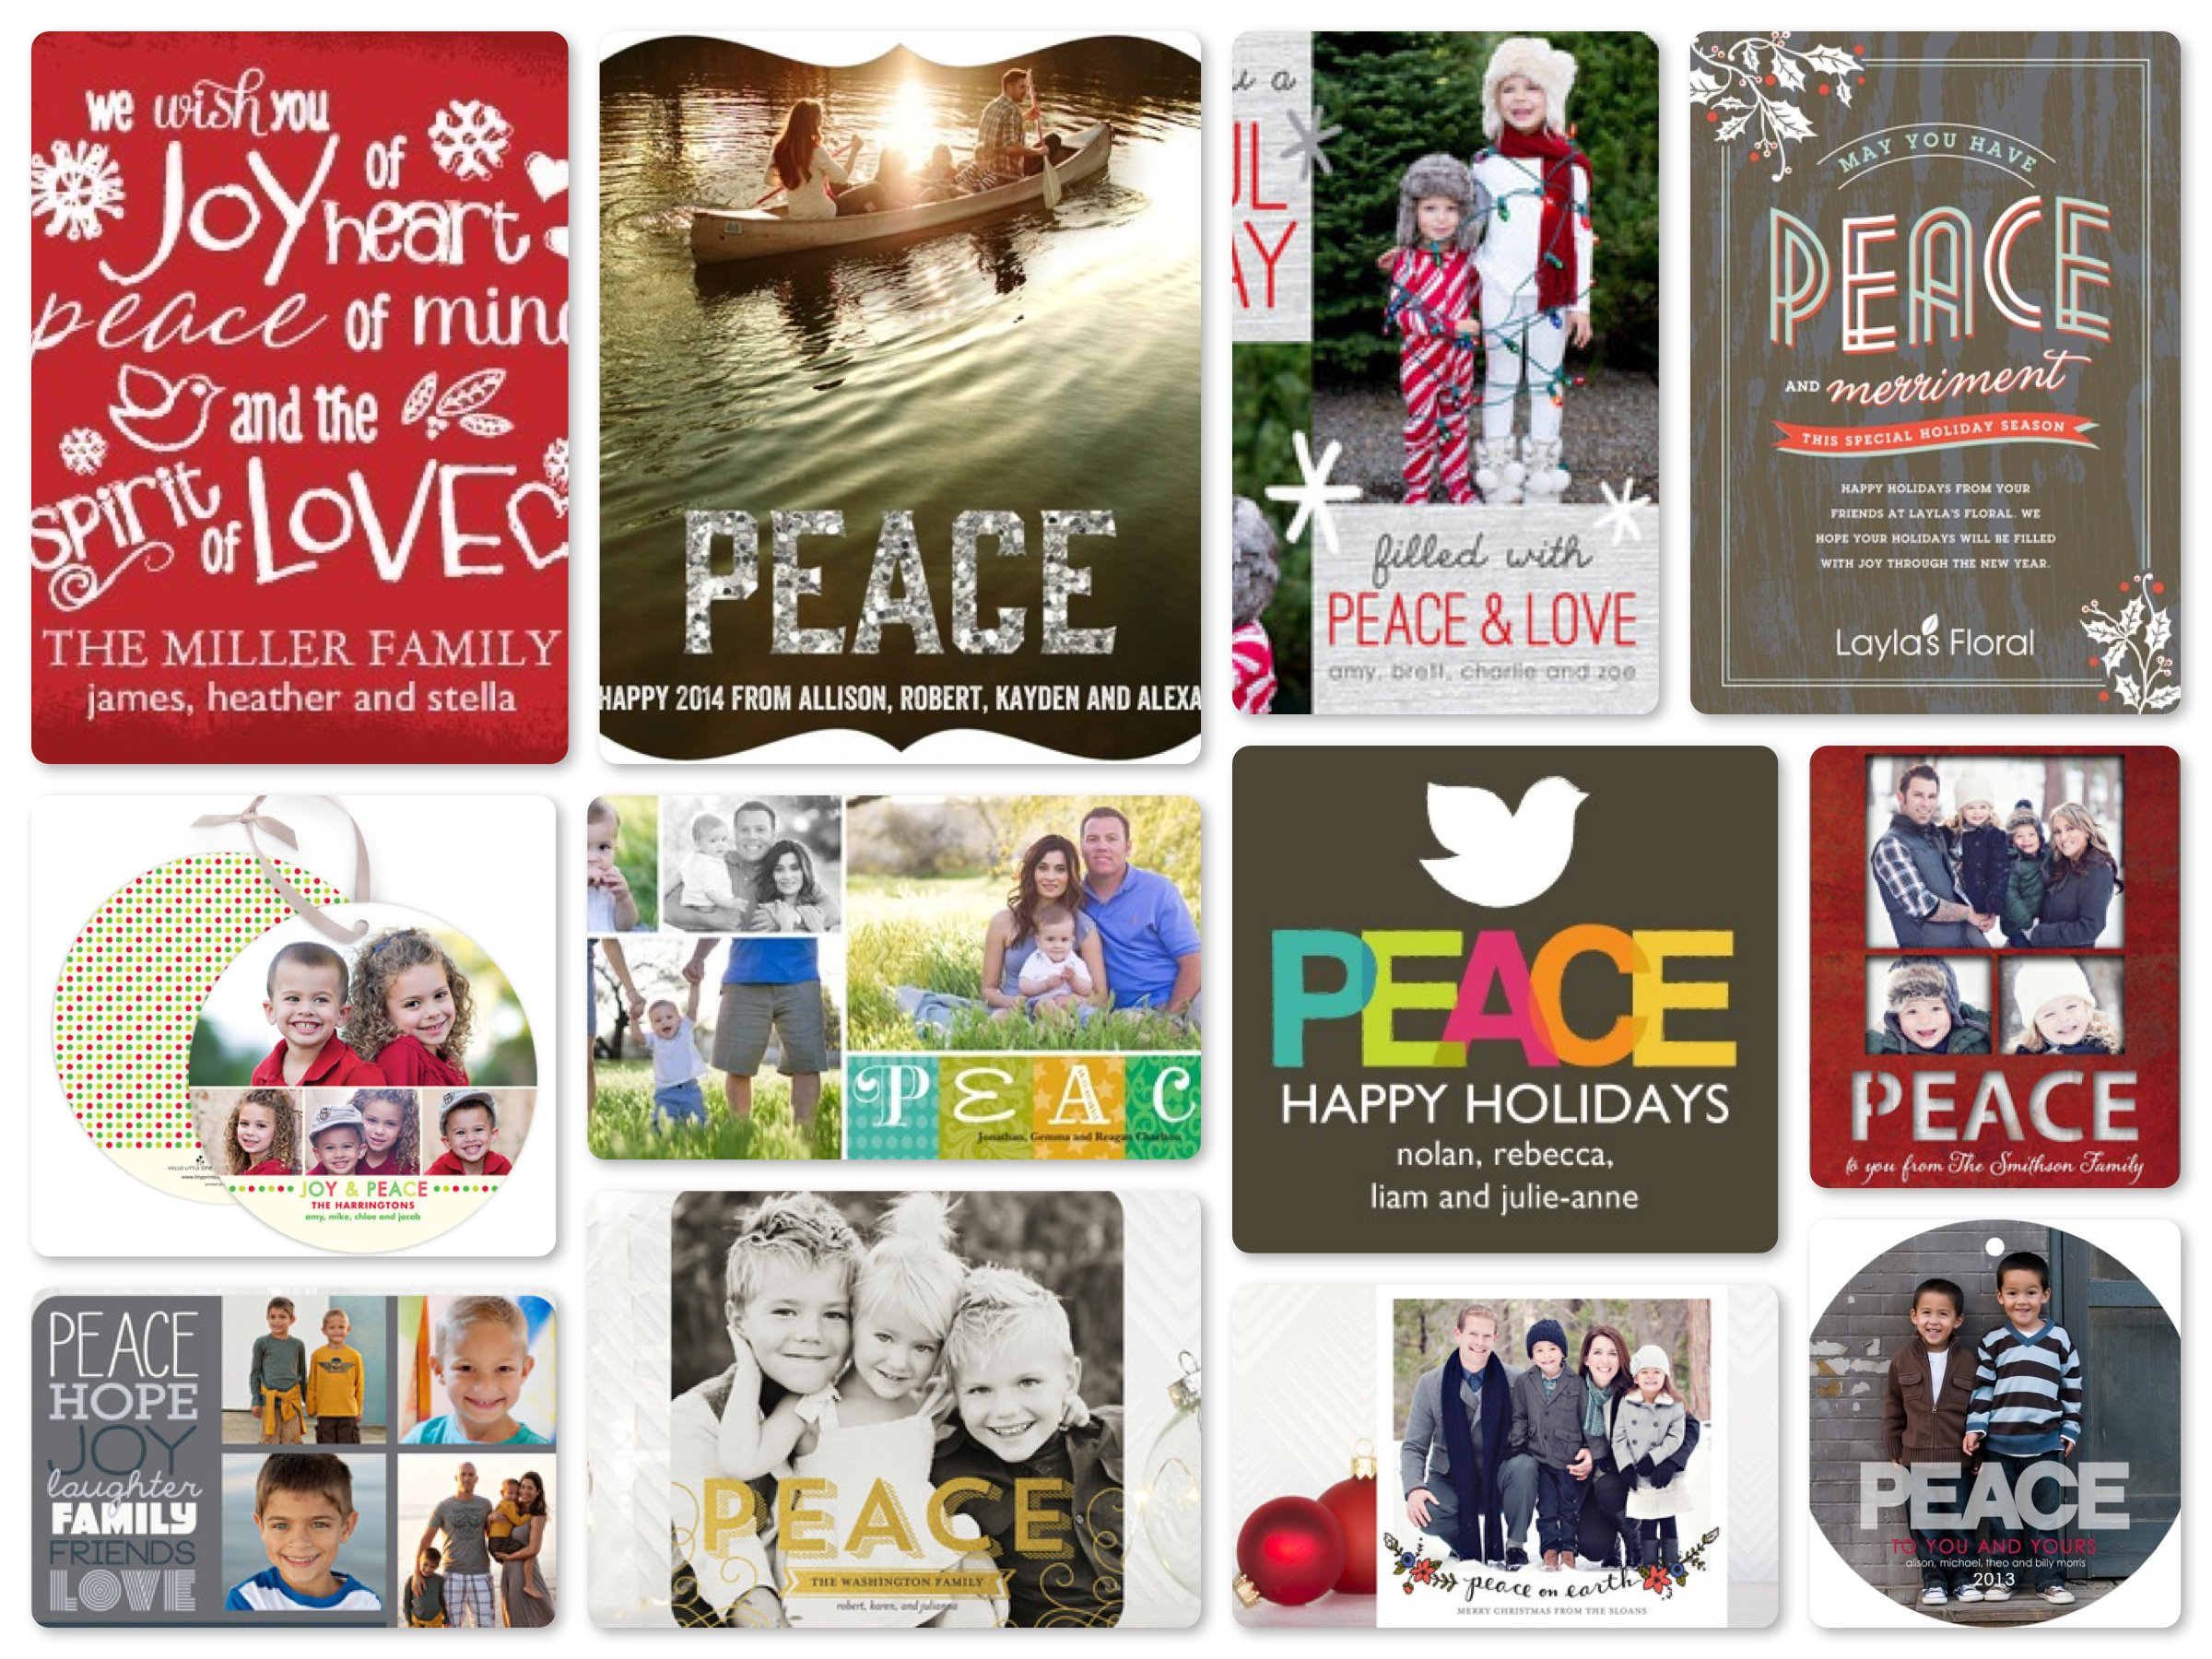 Peace New Year Cards, Season Greetings Cards